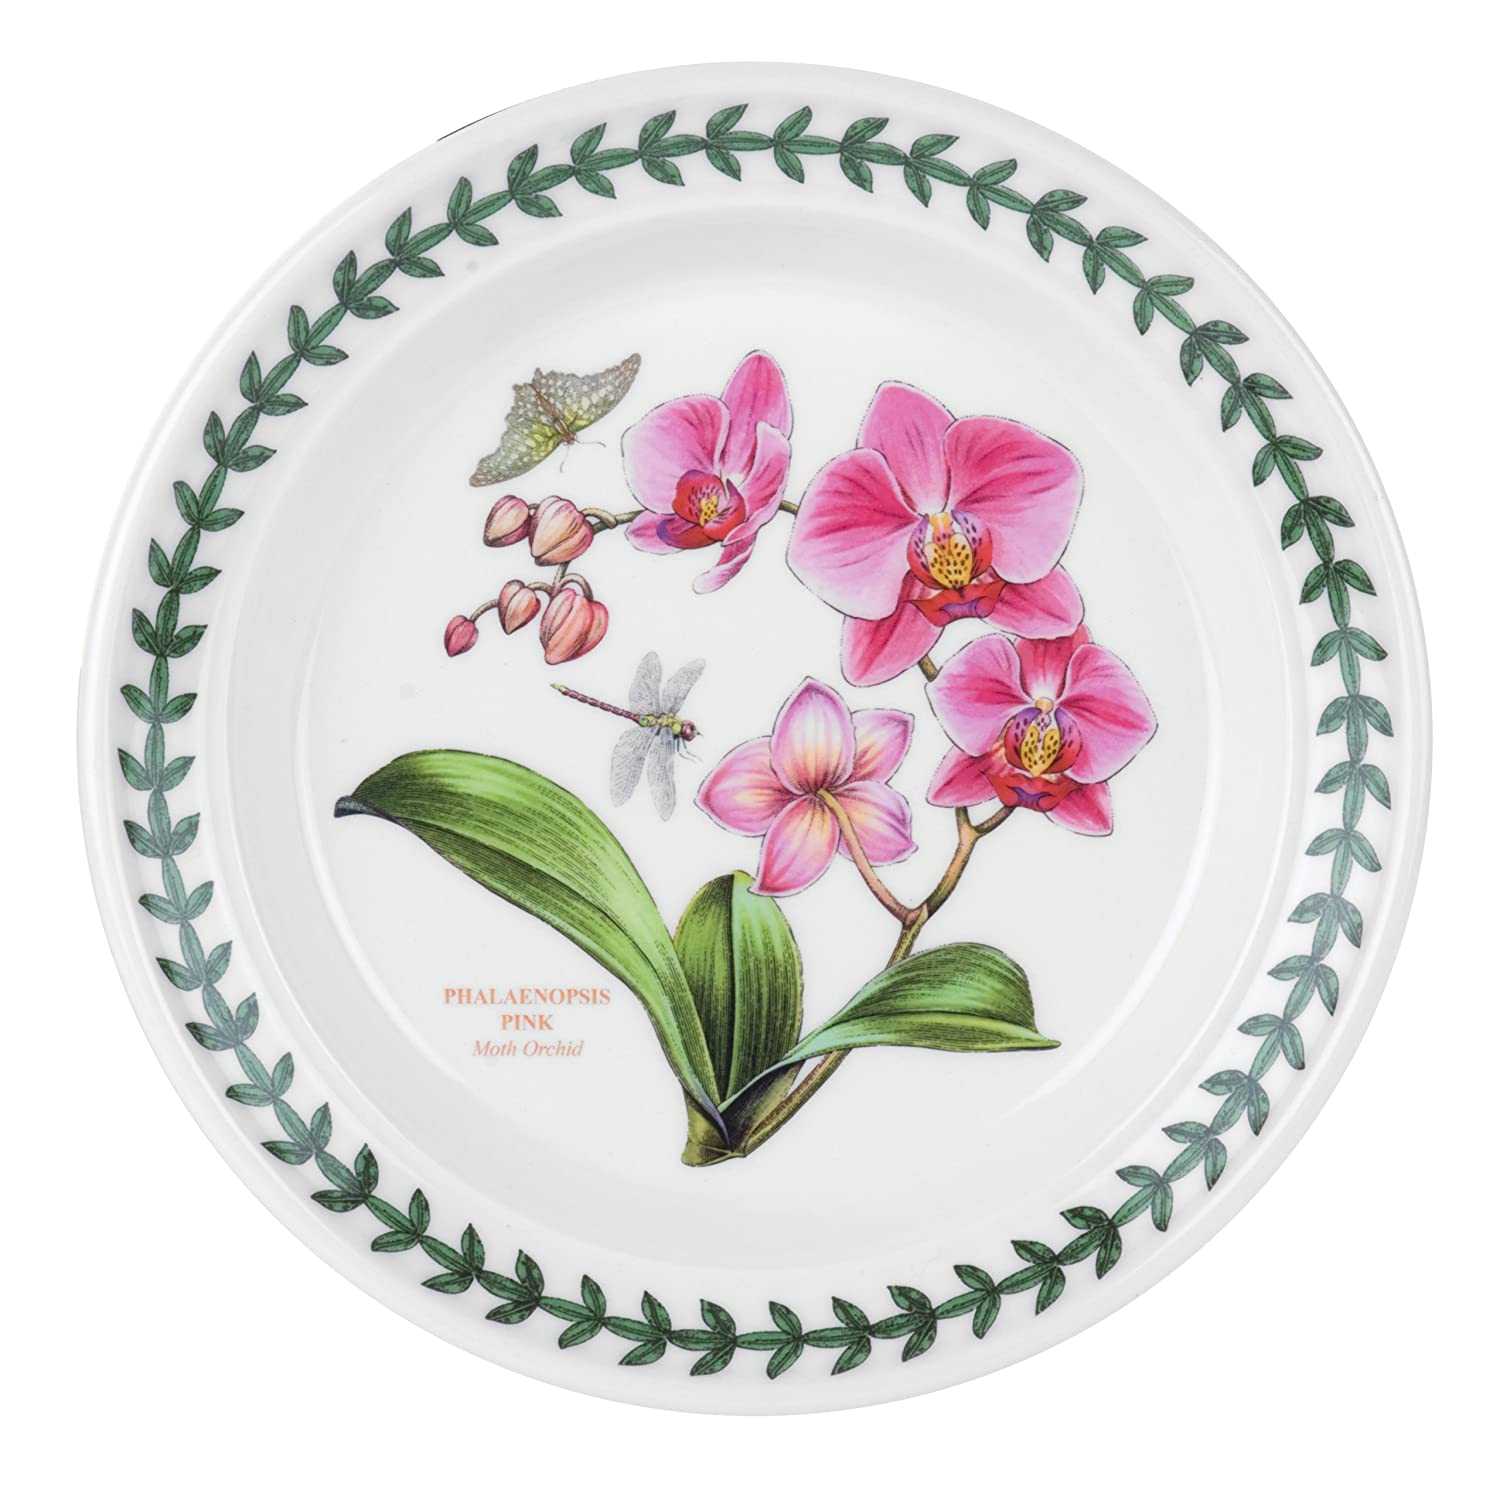 Portmeirion Exotic Botanic Garden Bread and Butter Plate Set with 6 Assorted Motifs